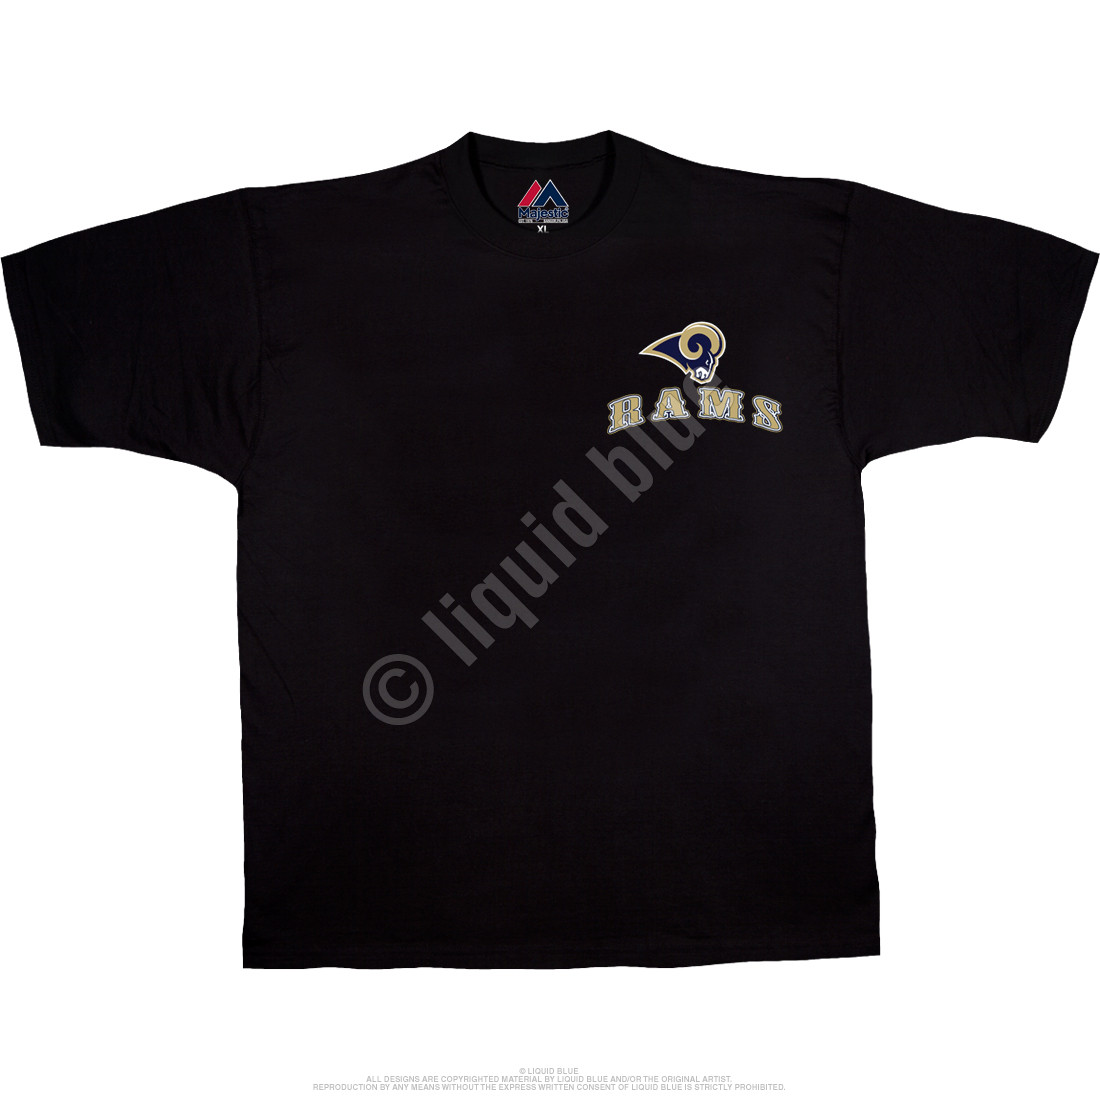 Los Angeles Rams Running Back Black T-Shirt